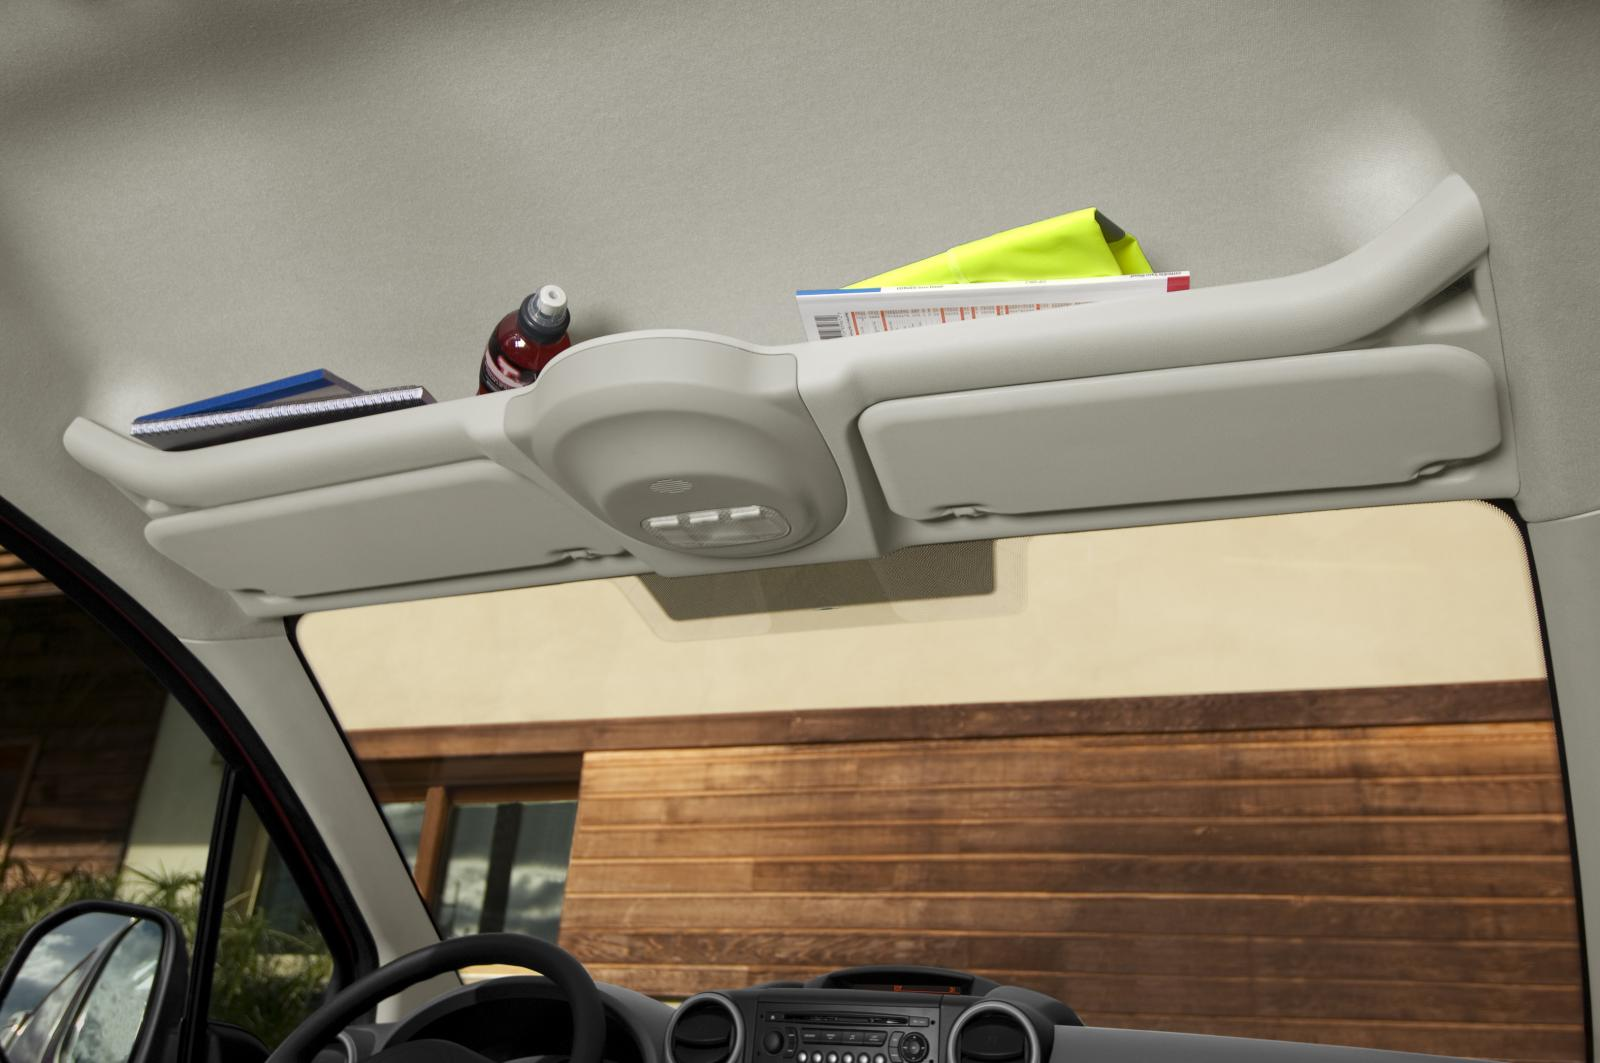 Berlingo 2008 roof storage